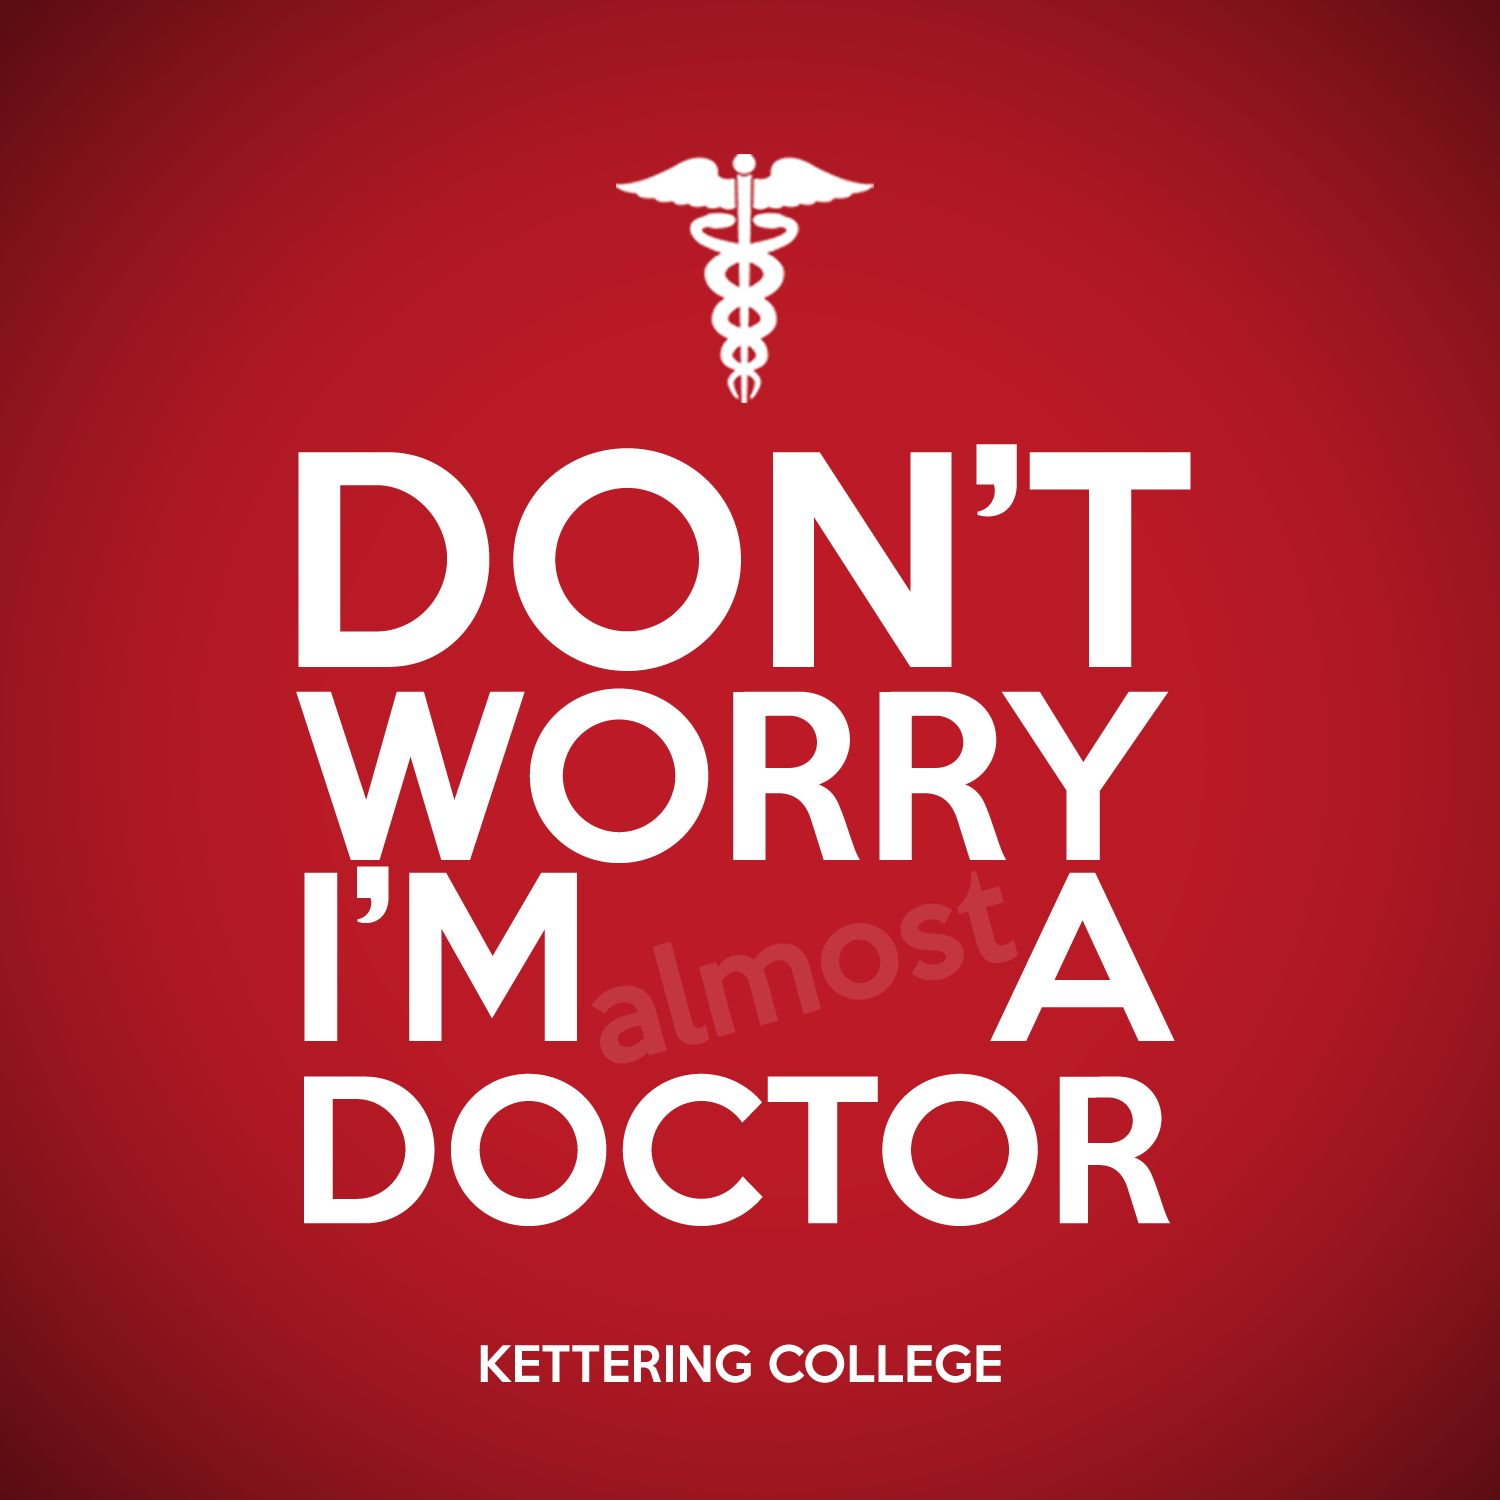 Best Quotes About Medicine: True Story ! #studying #medicine :)